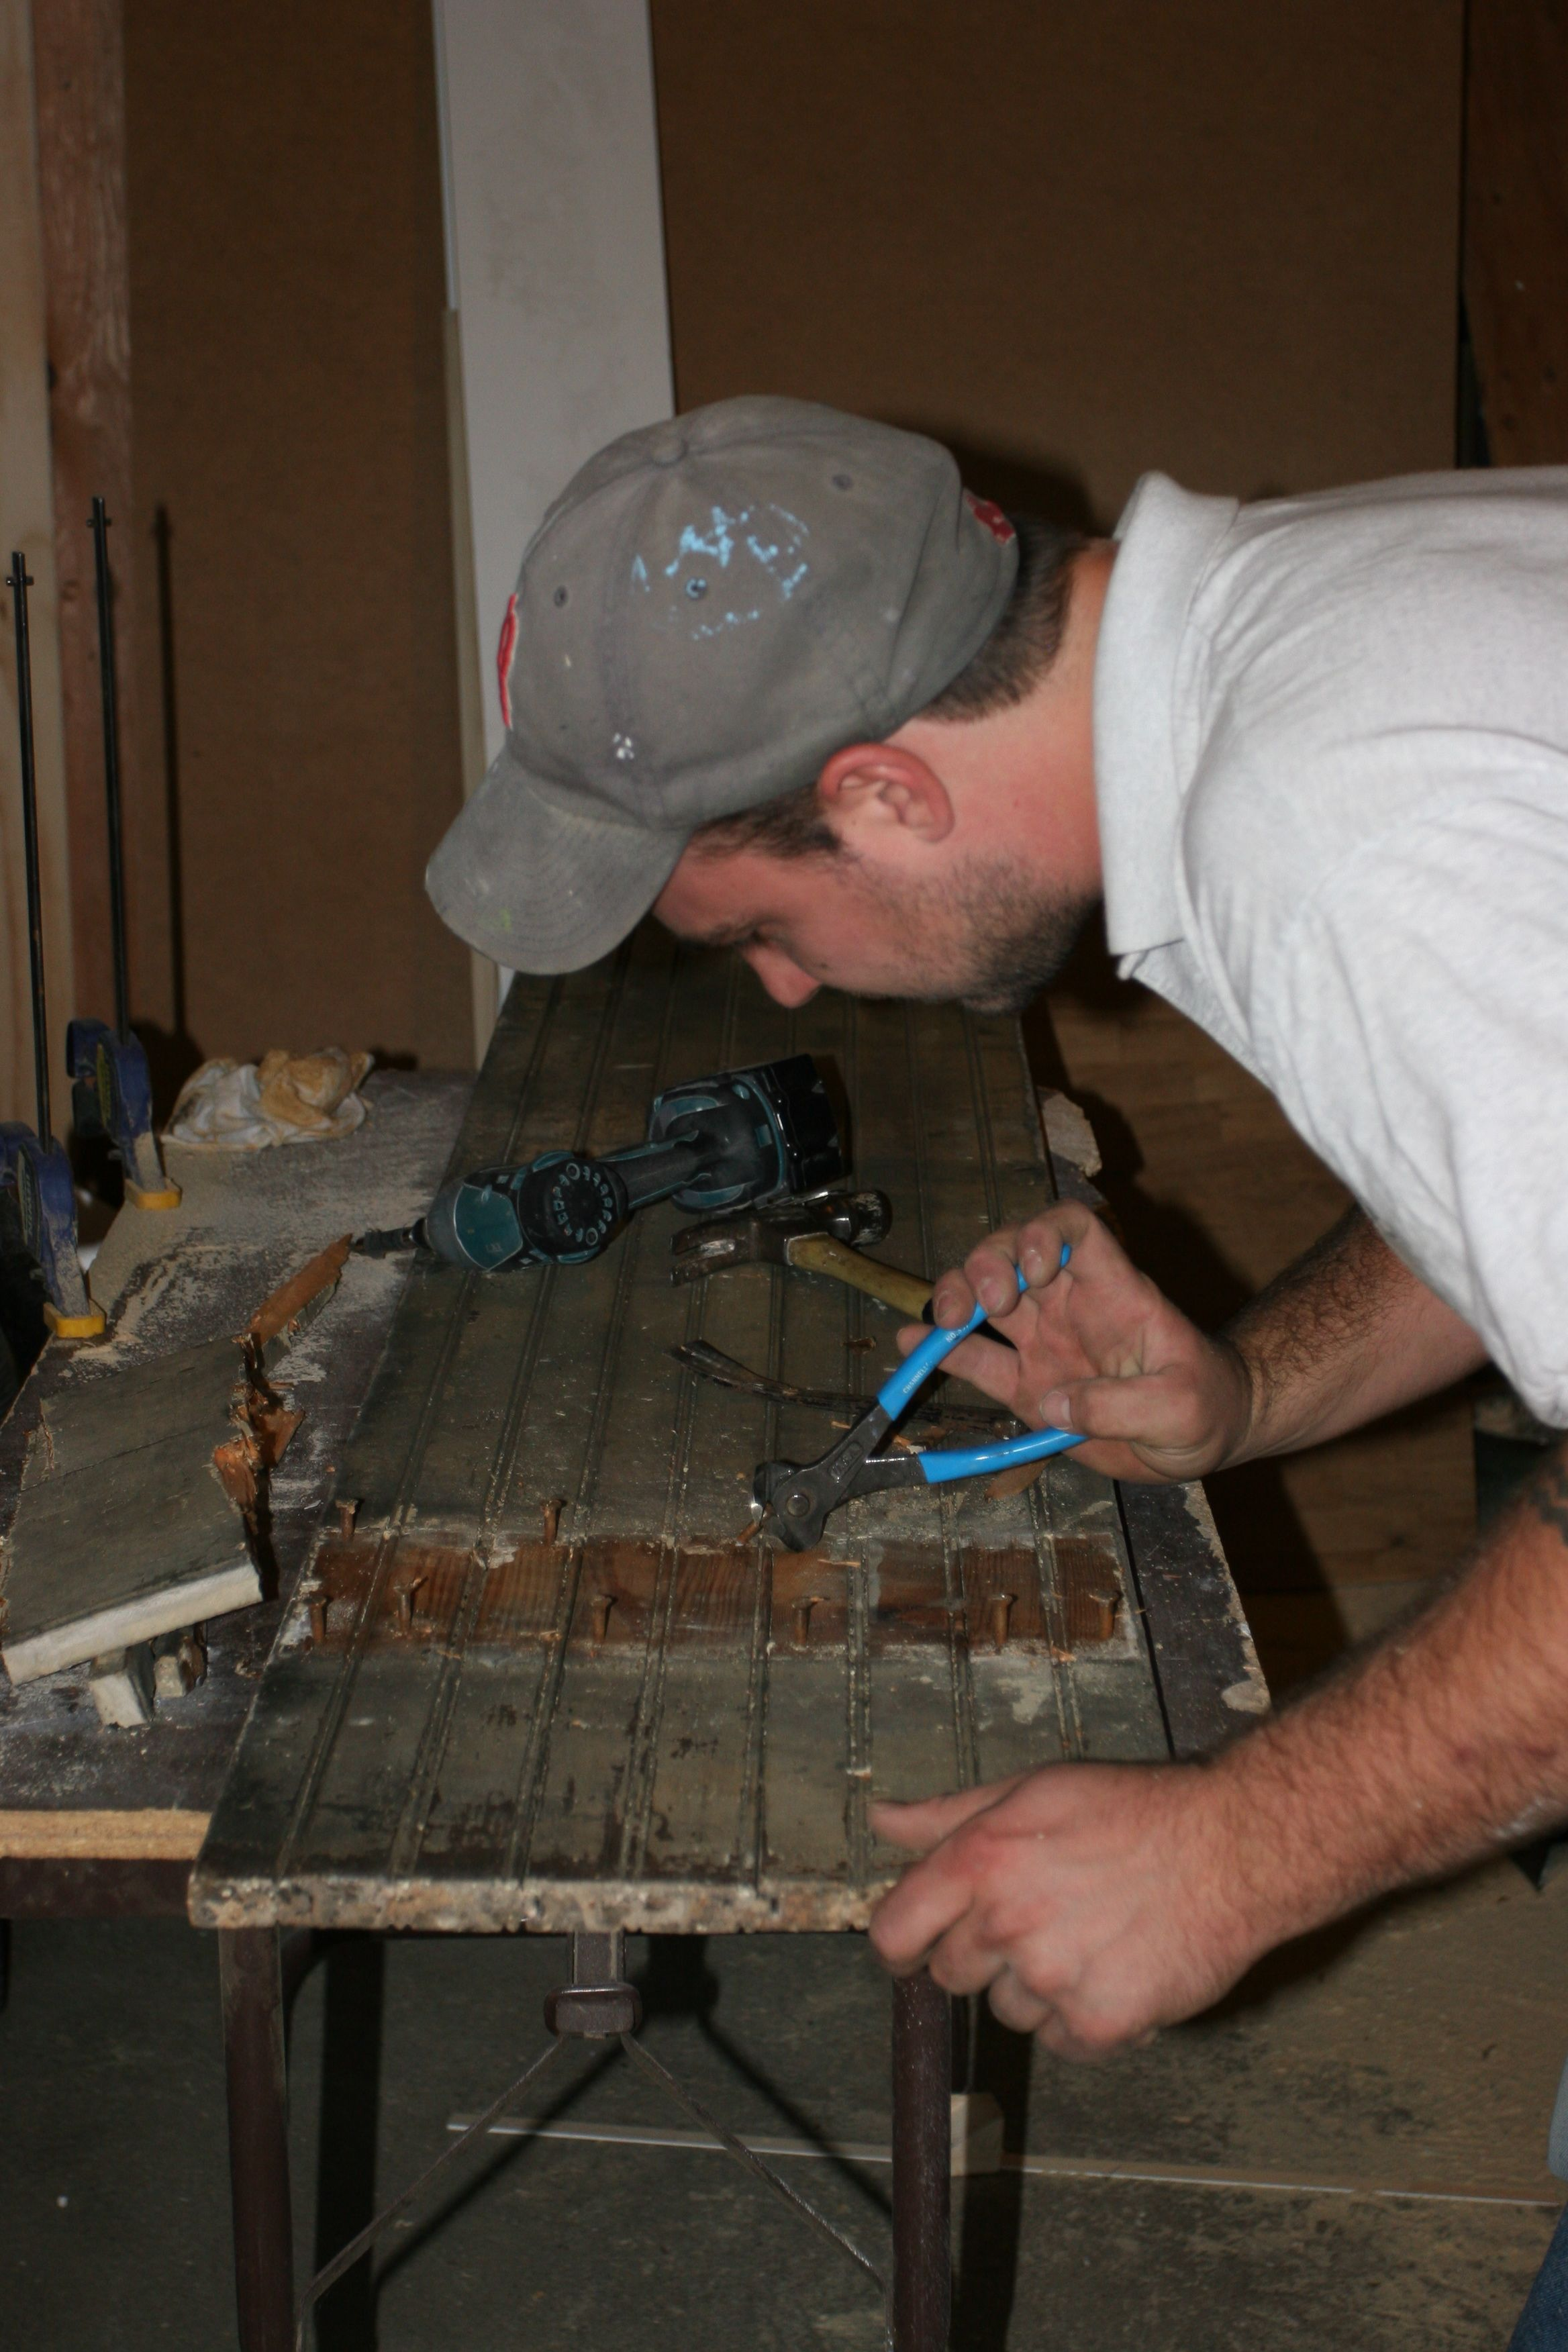 Proof that there's more than one way to unscrew a 90-year old brass screw.